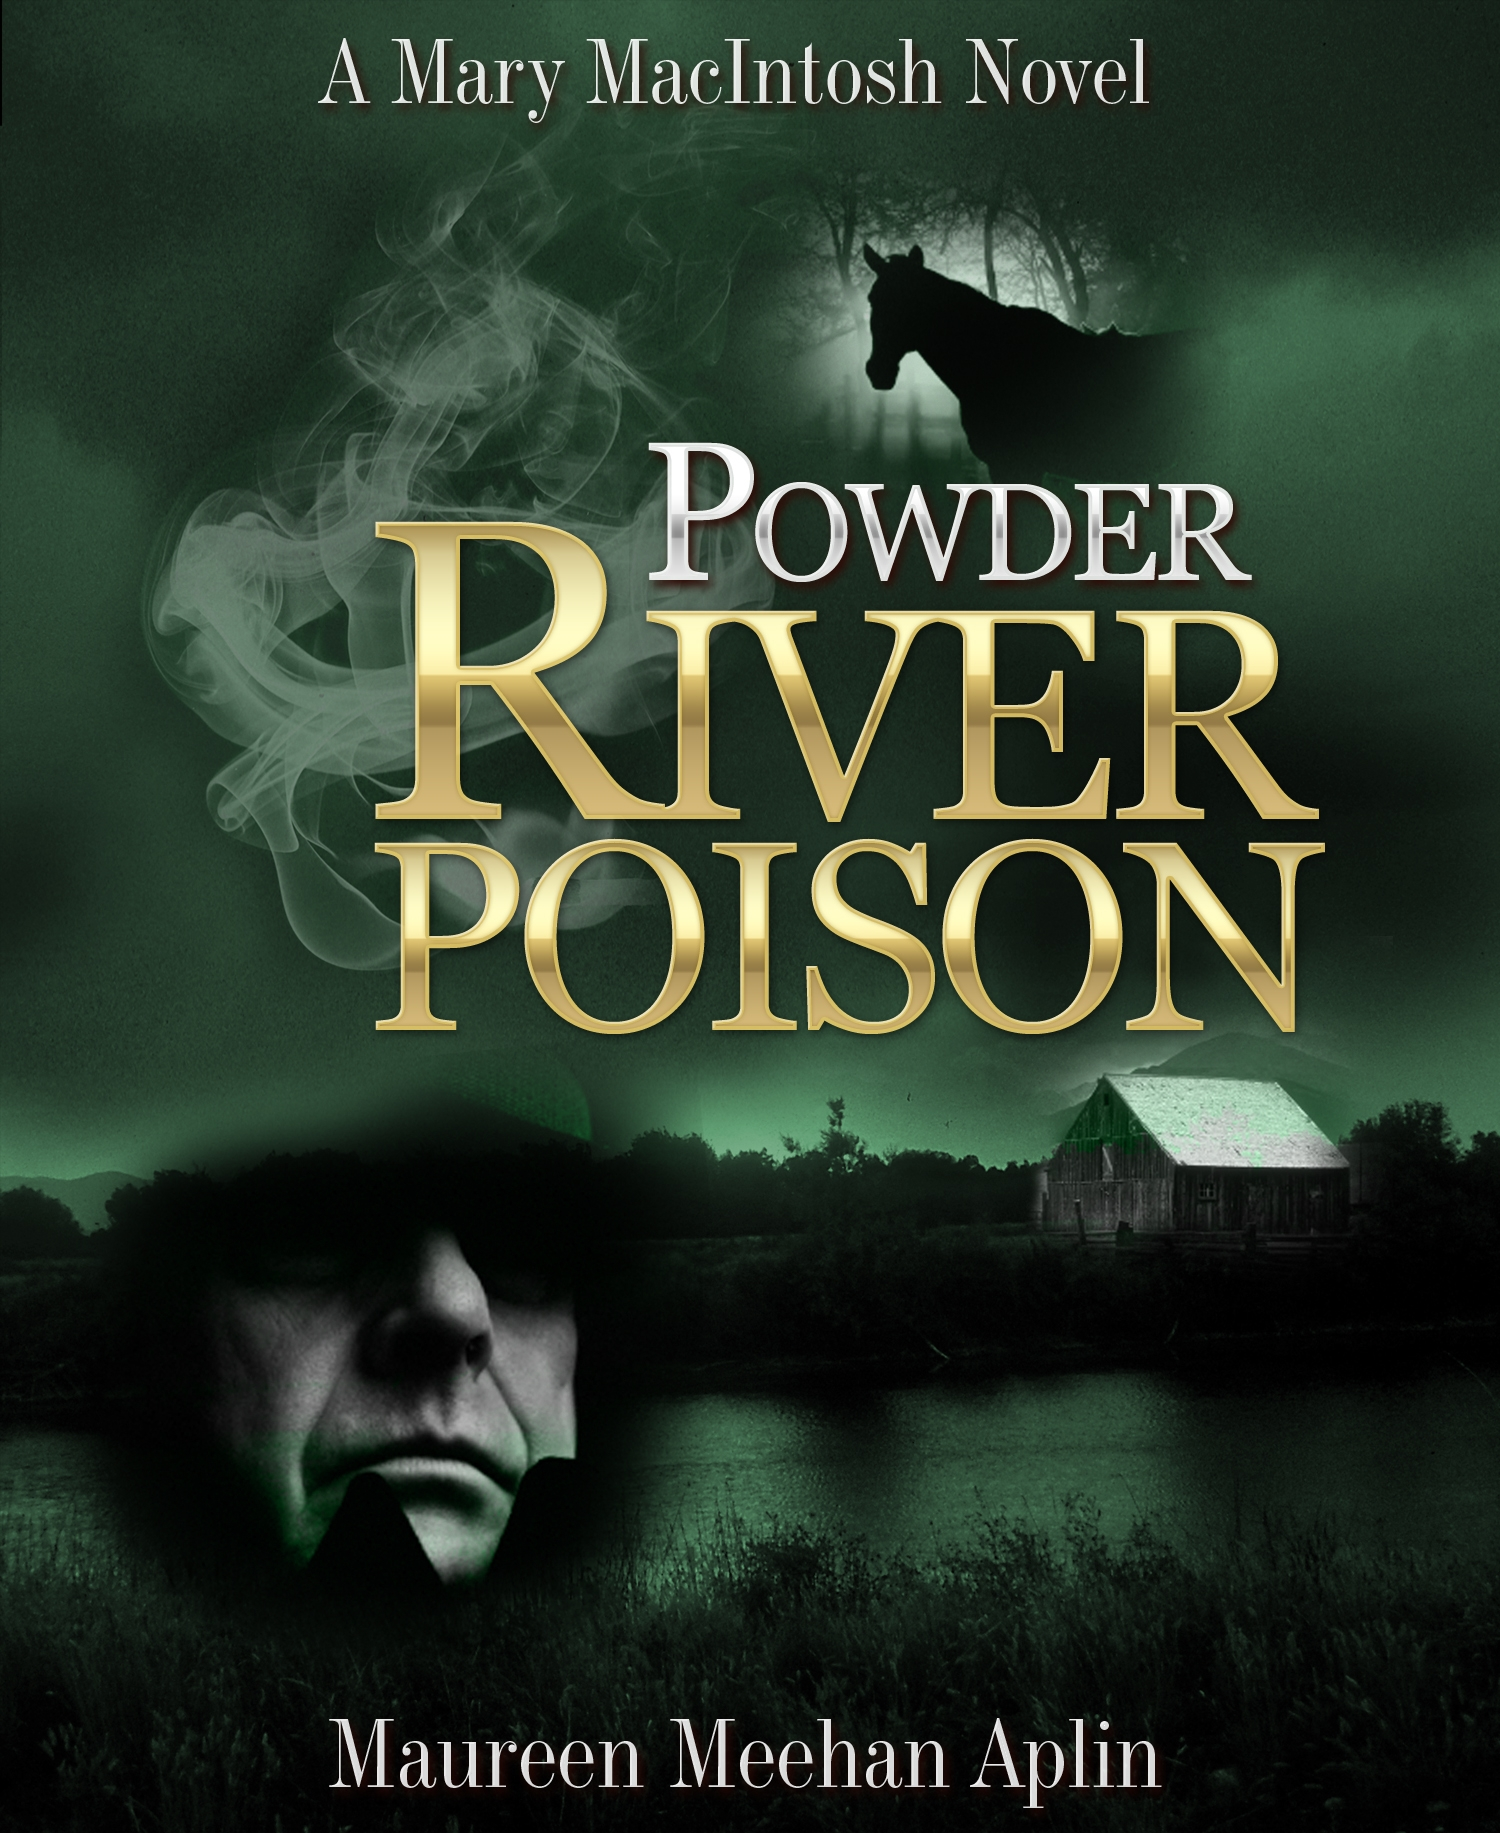 Powder River Poison, a Mary MacIntosh novel